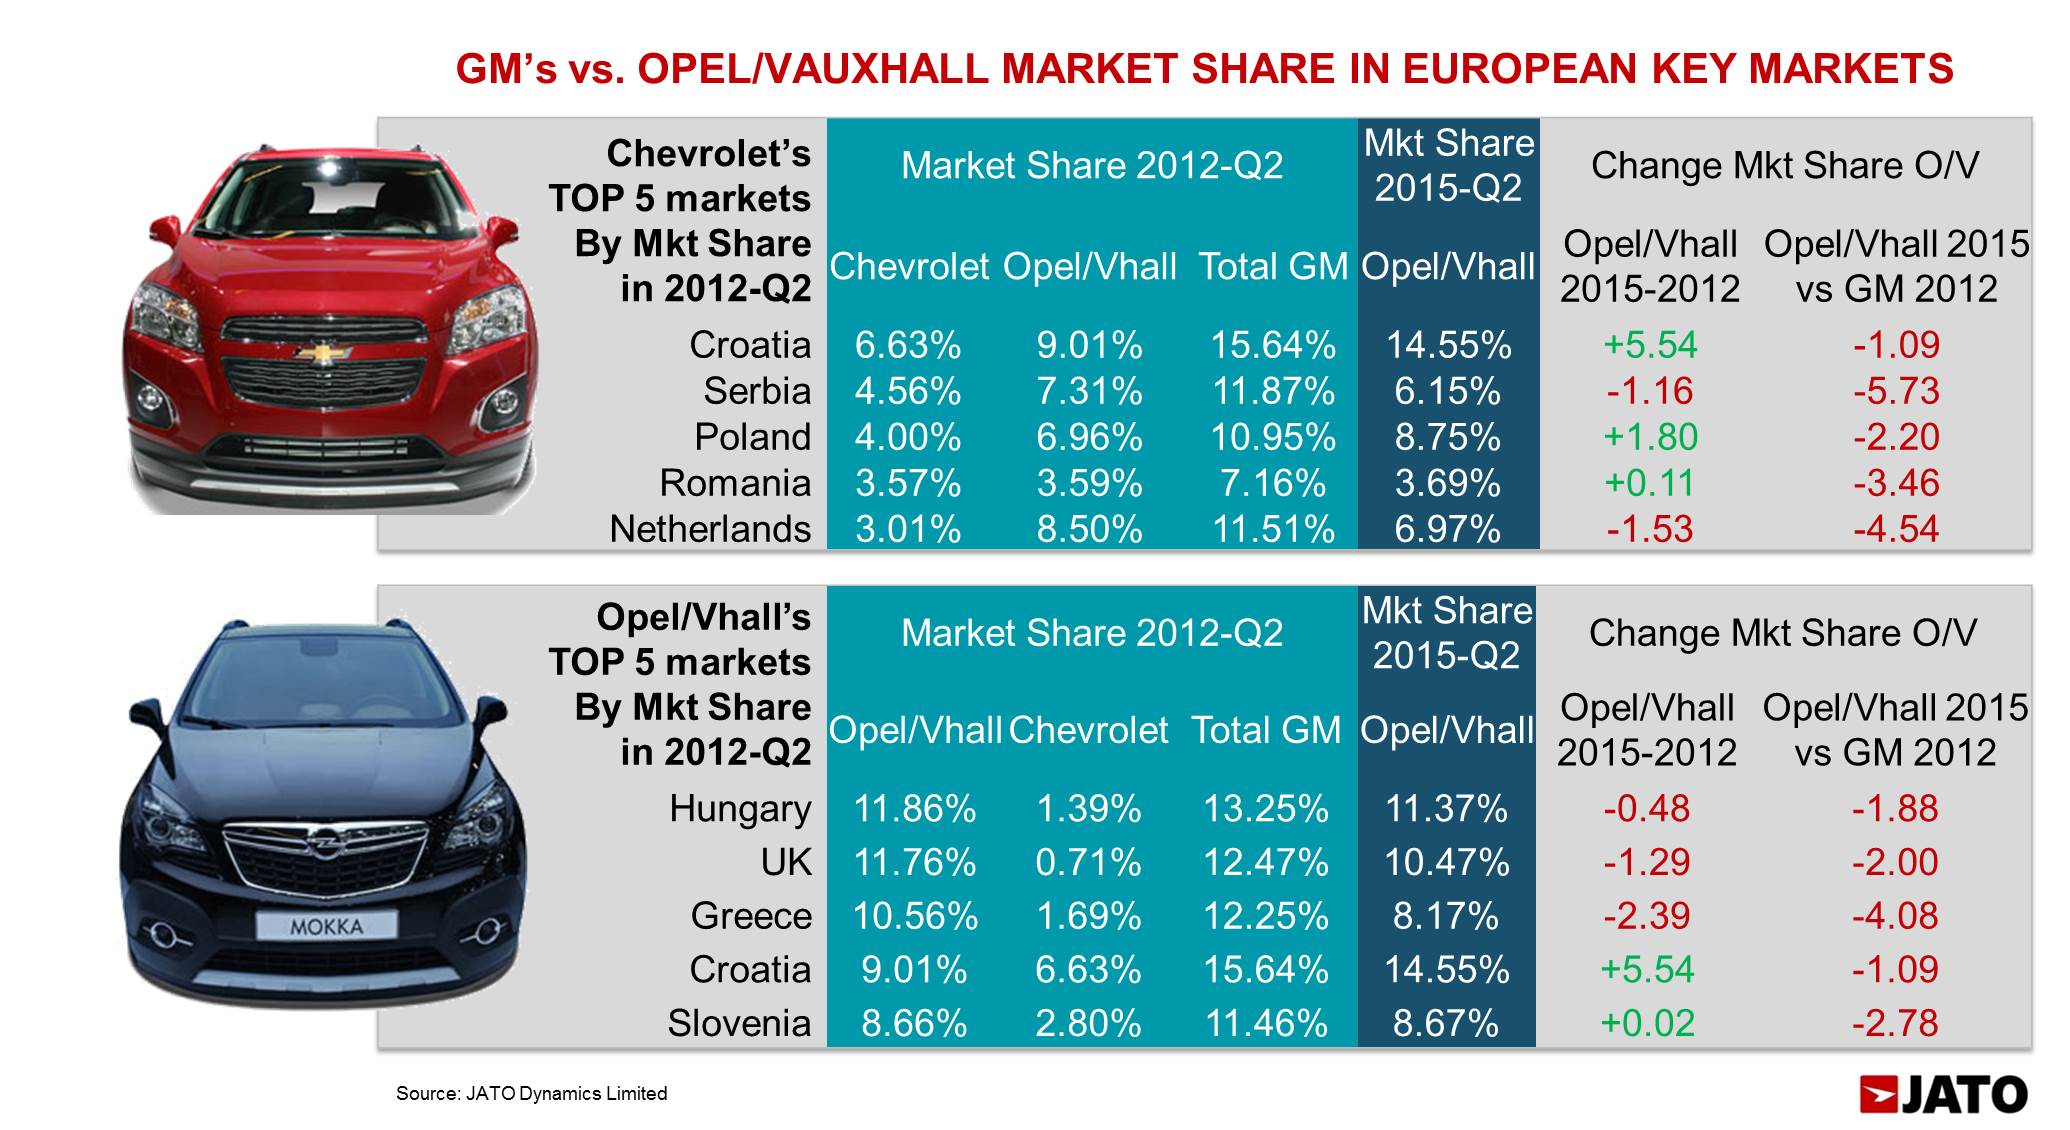 This chart shows the final effect of Chevrolet's drop. The first table shows what happened to GM's share in those markets where Chevrolet had the highest market shares. While Opel/Vauxhall share increased in Croatia, Poland and Romania, the rise was not enough to offset Chevrolet's withdraw as shown in the last column. The second table shows the same results for those markets where Opel/Vauxhall posted the highest market shares in 2012-Q2.